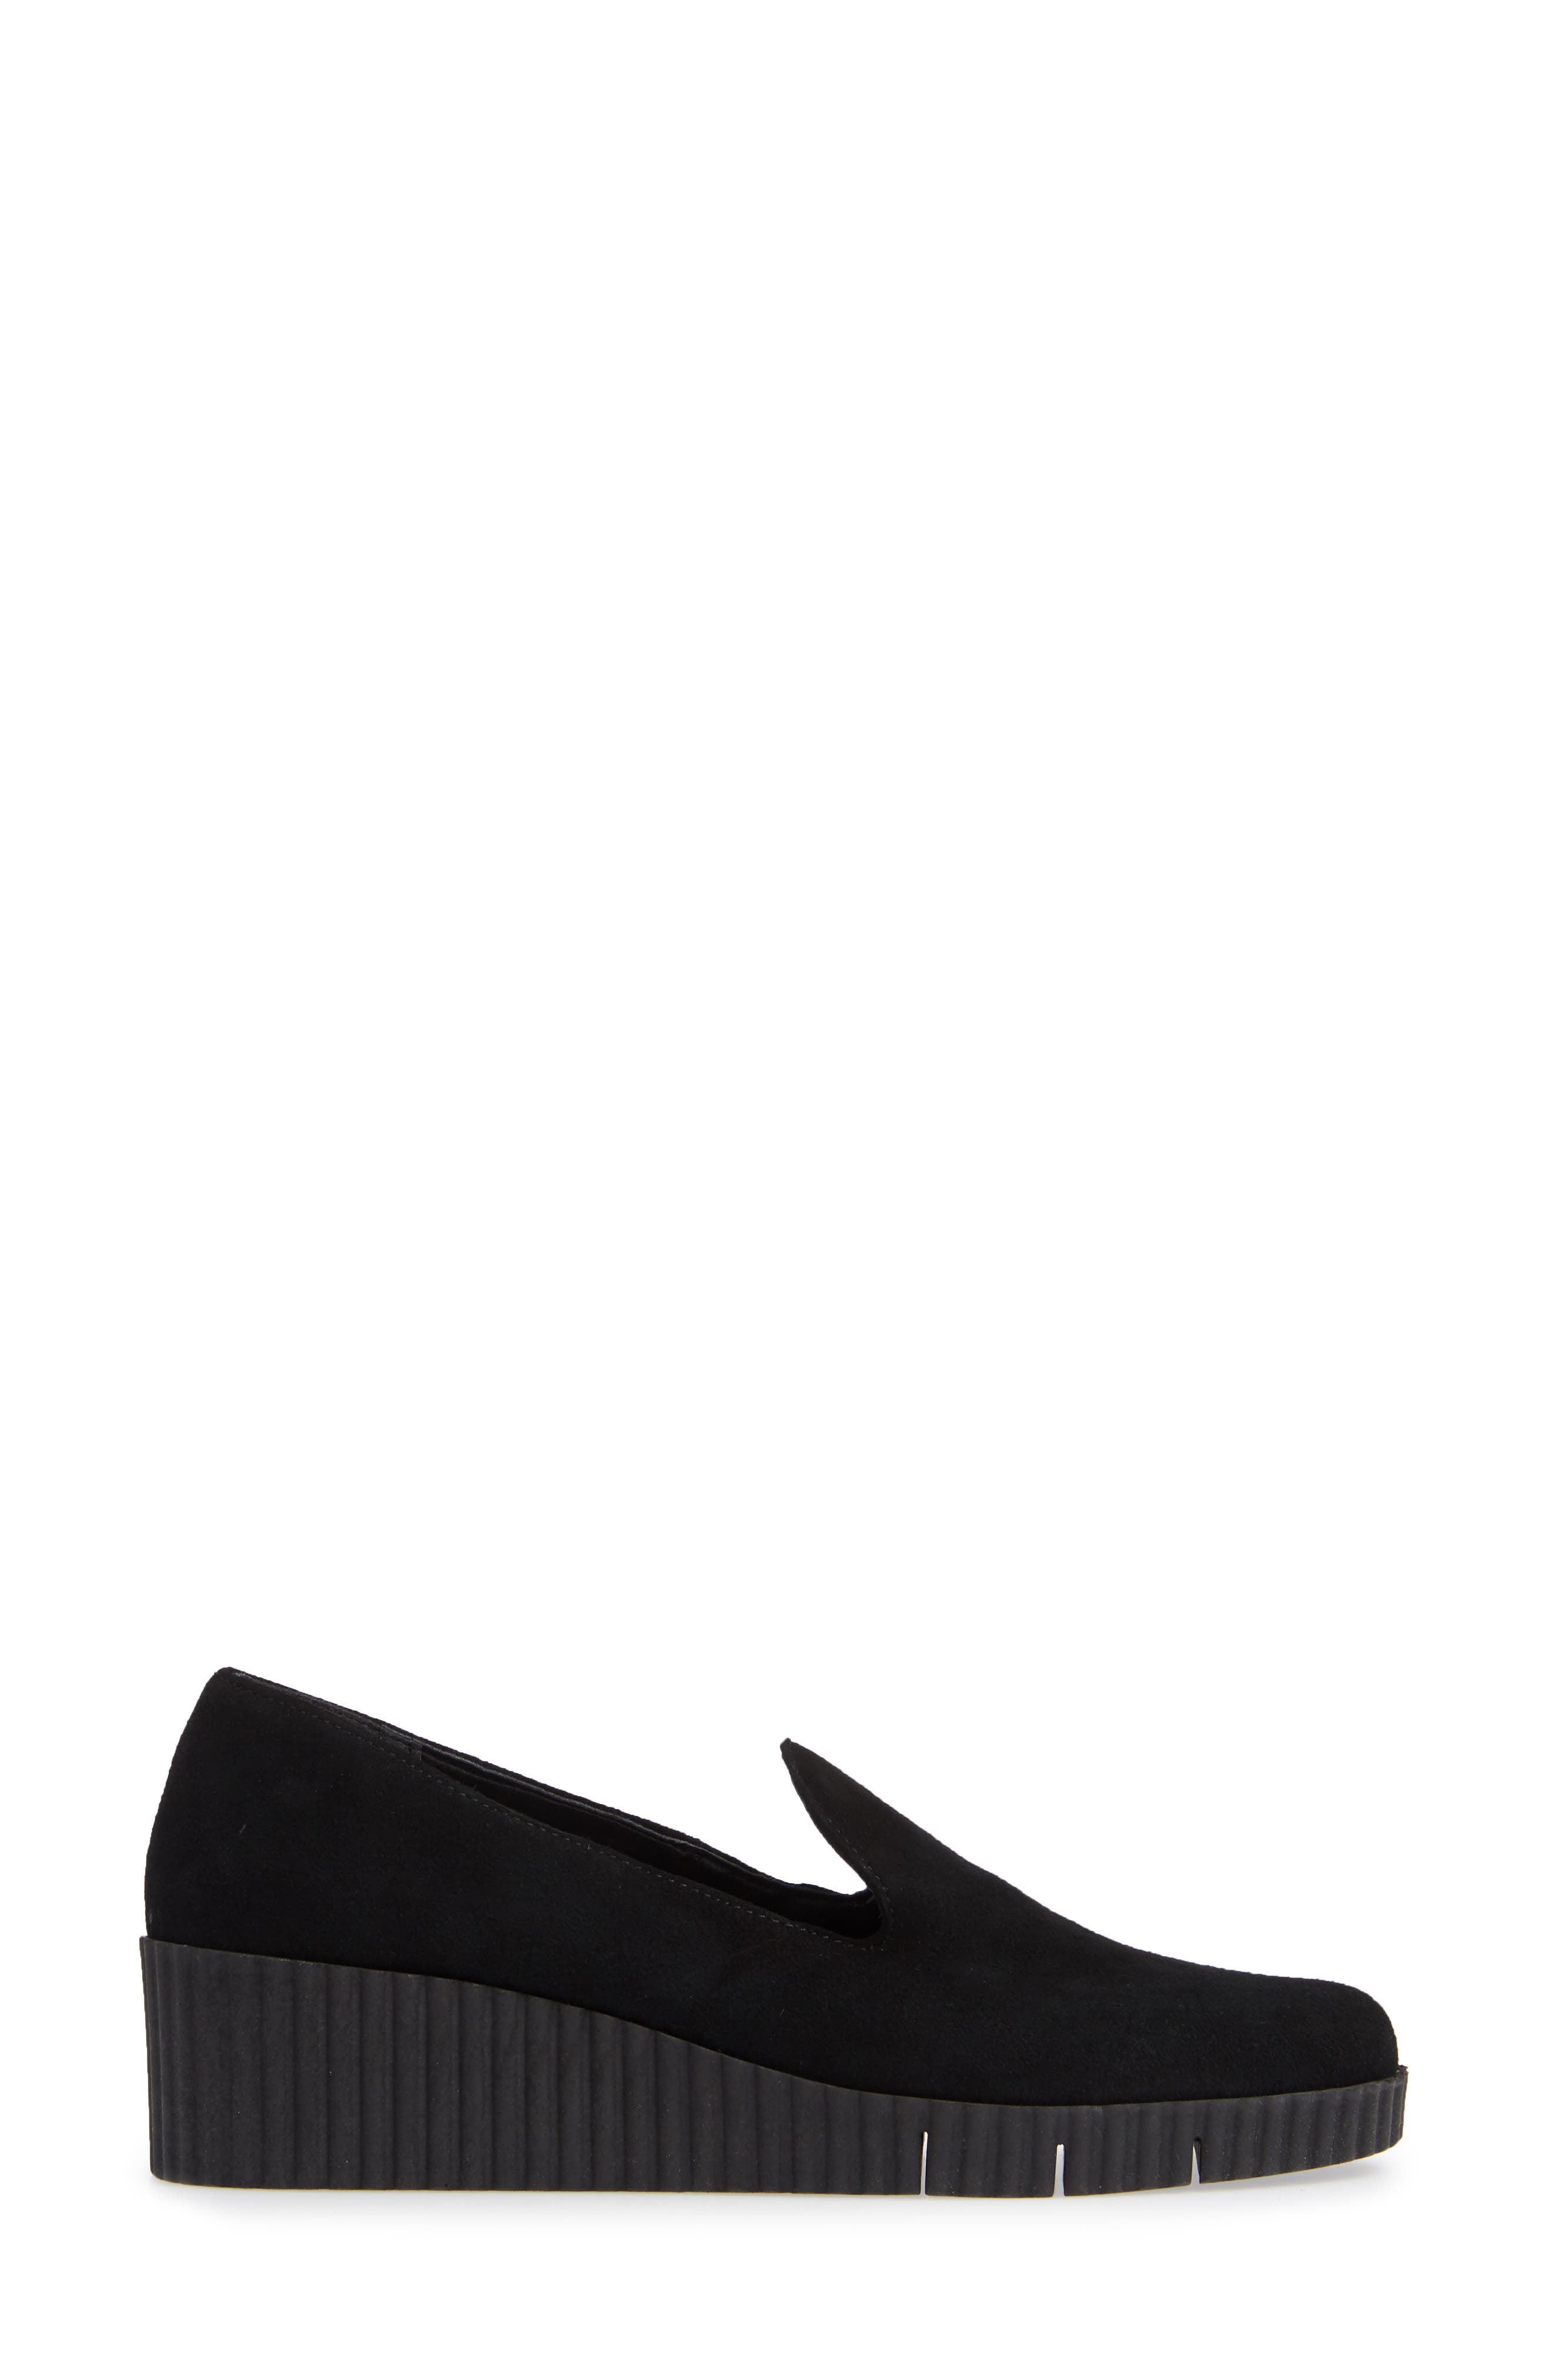 Fast Times Loafer,                             Alternate thumbnail 3, color,                             BLACK SUEDE